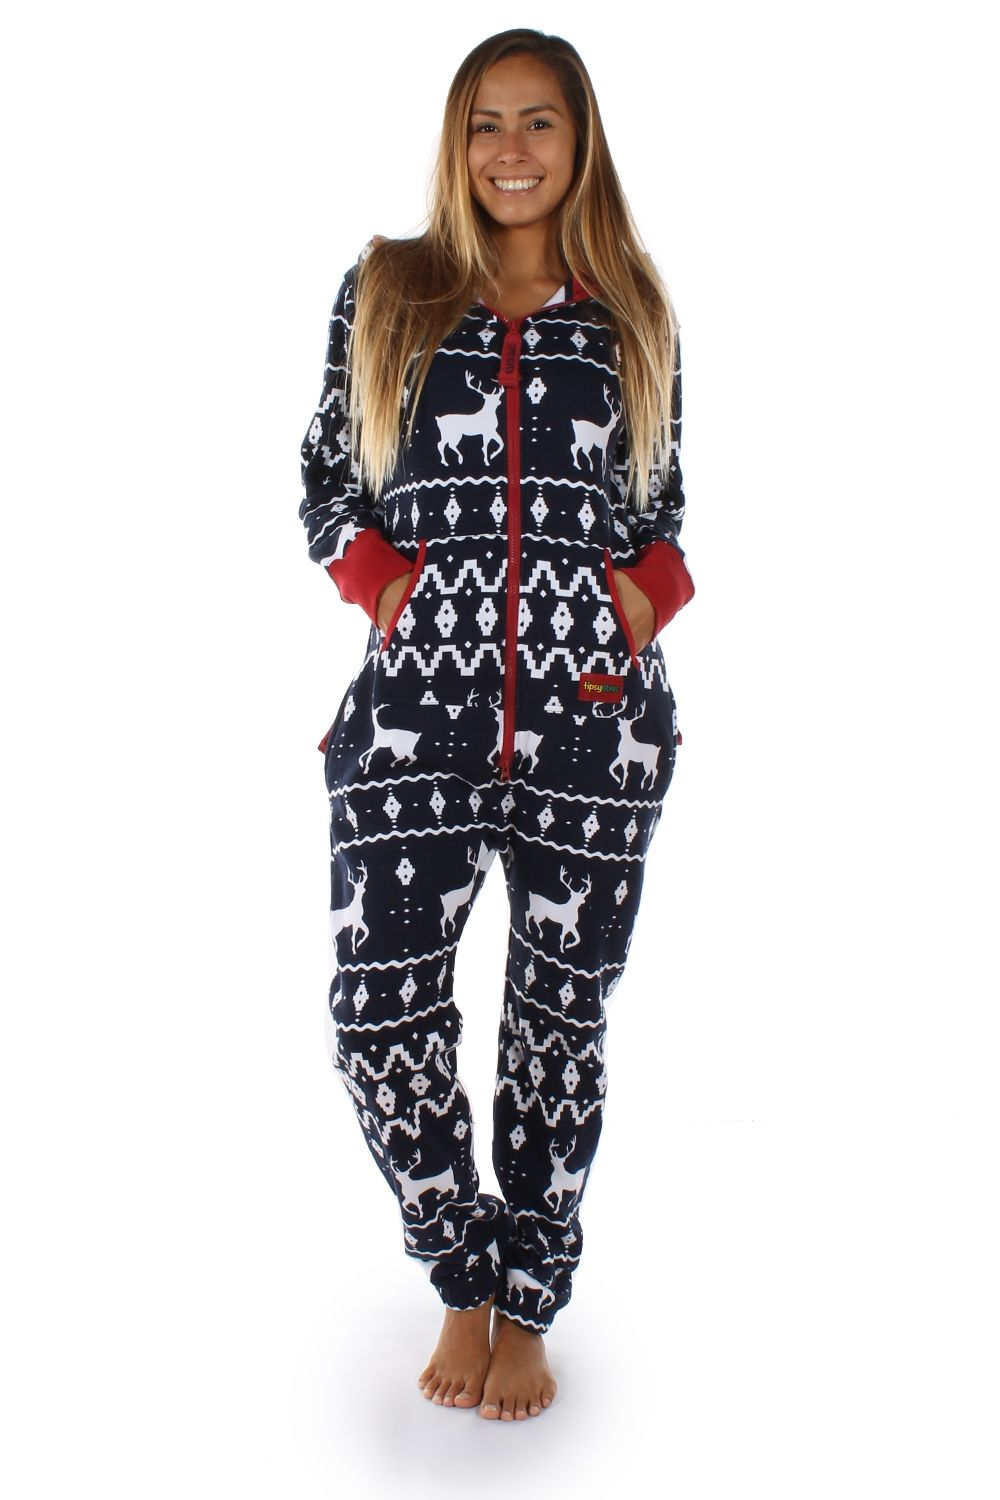 2e16d50663 Tired of regular old pajamas  This Christmas themed jumpsuit is perfect for  lazing around in during the holidays! Now bring on winter!